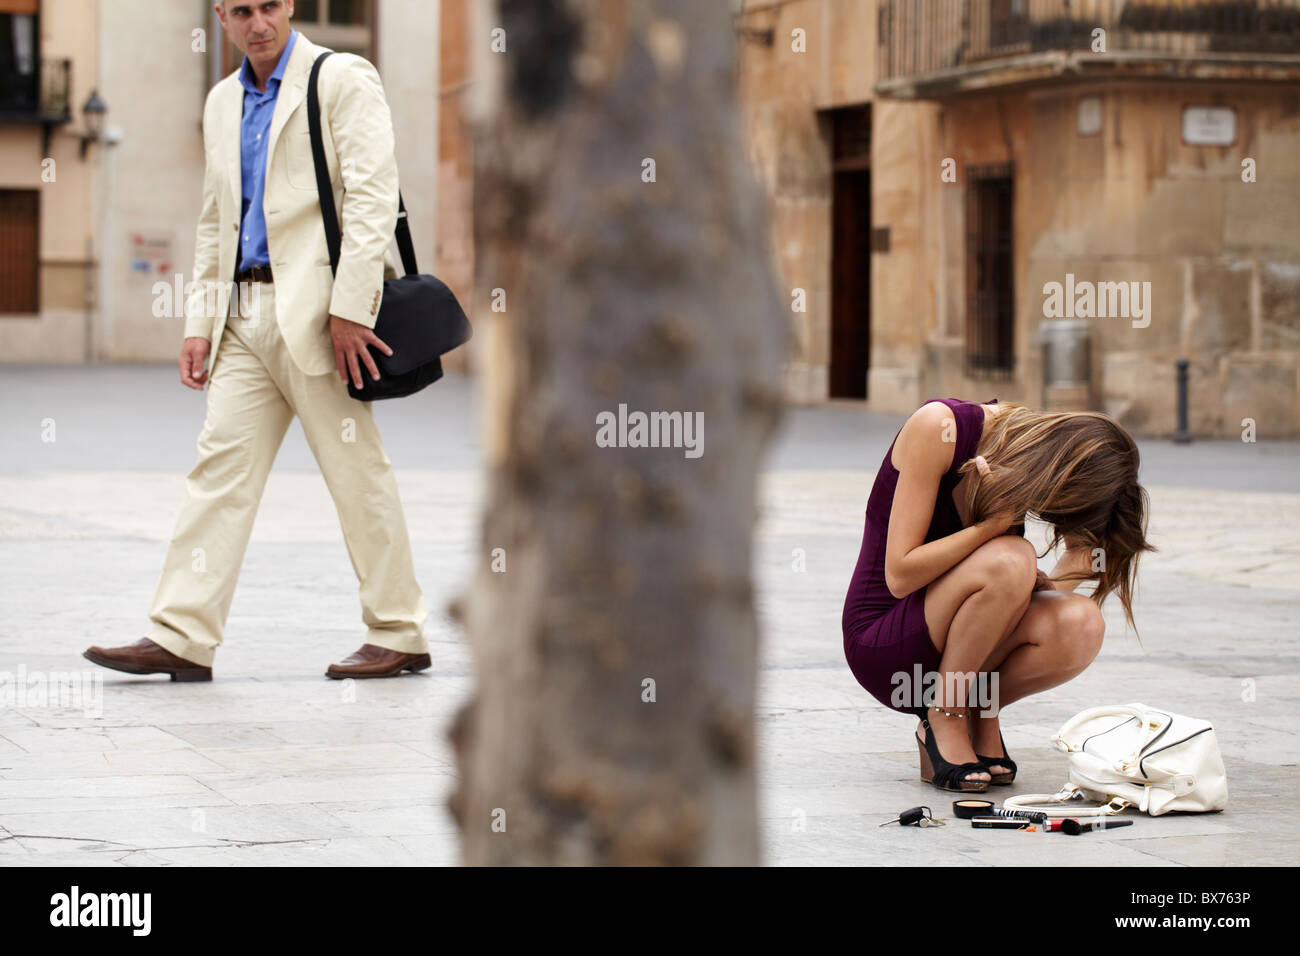 Woman crying over contents of handbag spilt on the street, older man walking by looking at her - Stock Image